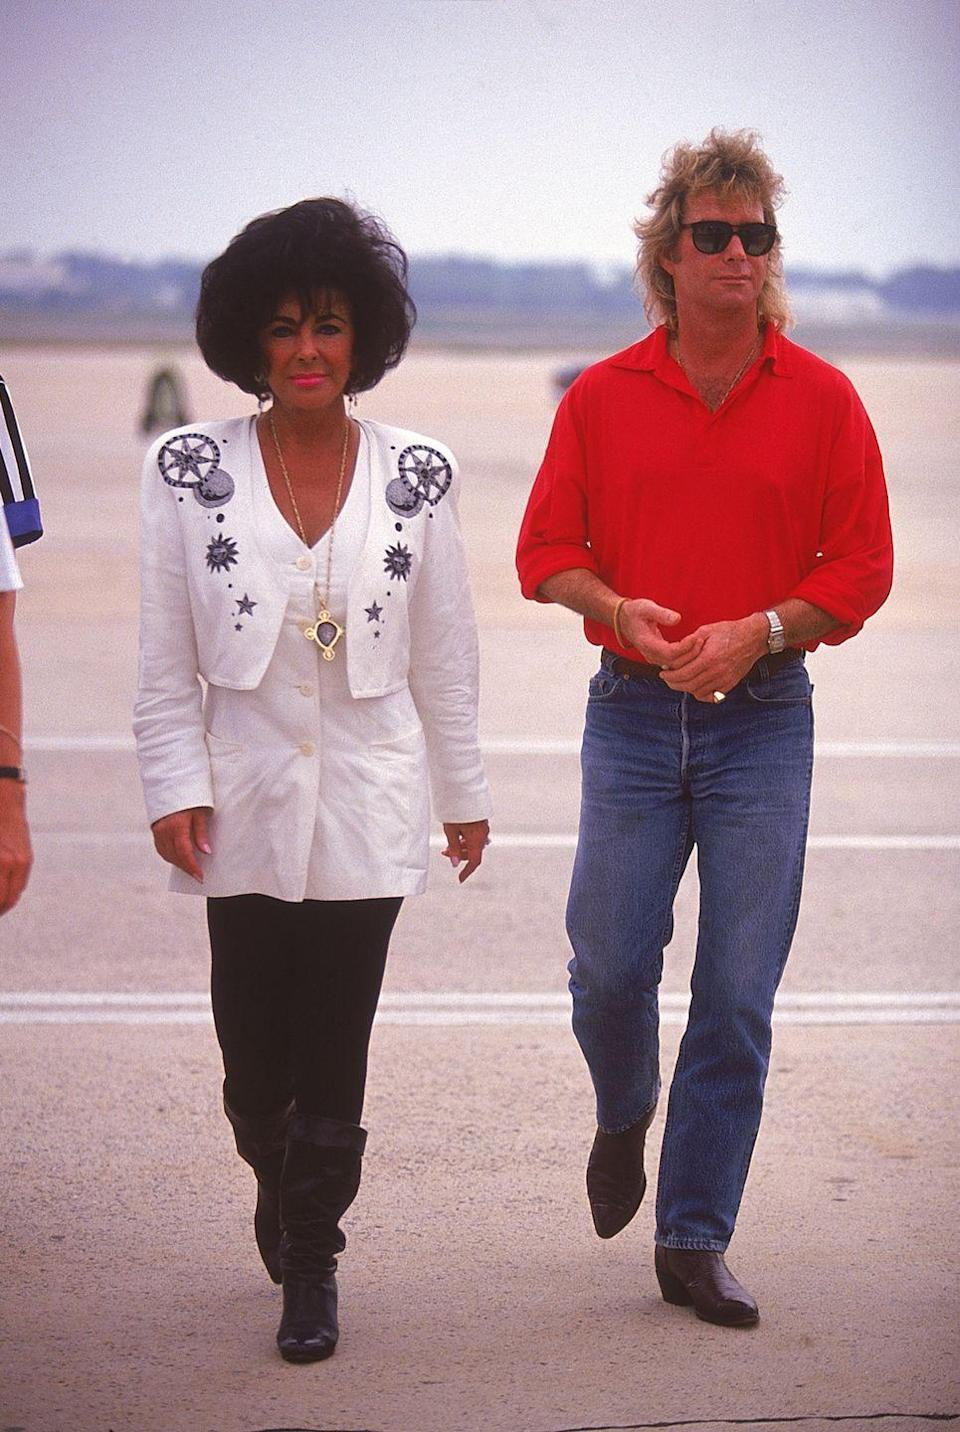 <p>In 1991, Elizabeth married construction worker Larry Fortensky, which was her eighth and final marriage. The actress and her seventh husband, met at the Betty Ford Center in 1988 and dated for three years before tying the knot on Michael Jackson's Neverland Ranch. They divorced in 1996 and Elizabeth never remarried.</p>